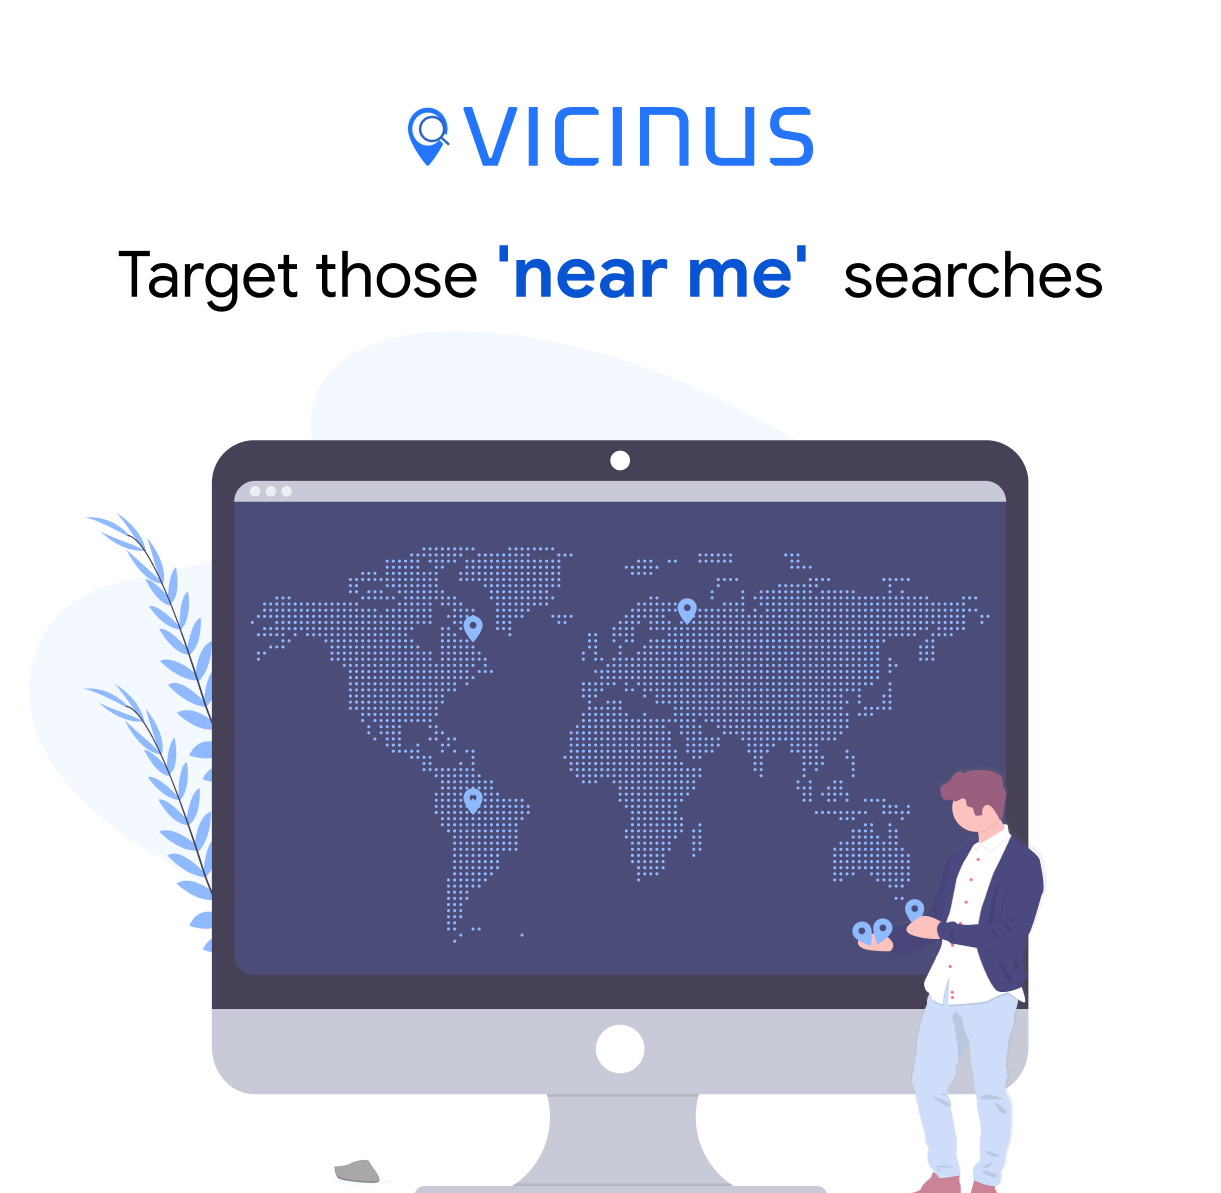 vicinus near me searches